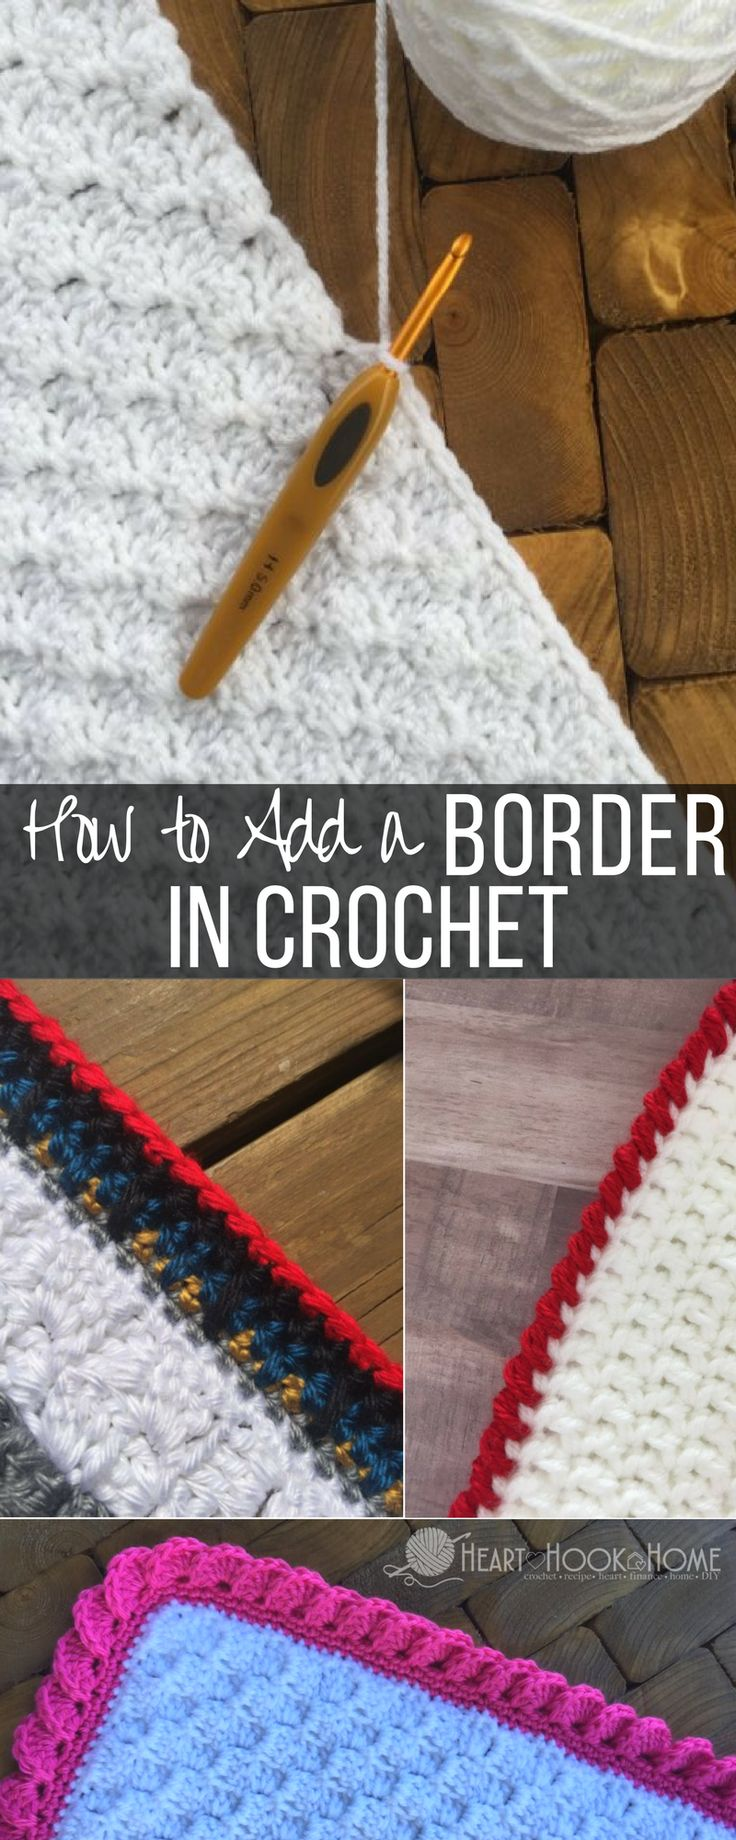 How to Add a Border in Crochet http://hearthookhome.com/how-to-add-a-border-in-crochet/?utm_campaign=coschedule&utm_source=pinterest&utm_medium=Ashlea%20K%20-%20Heart%2C%20Hook%2C%20Home&utm_content=How%20to%20Add%20a%20Border%20in%20Crochet